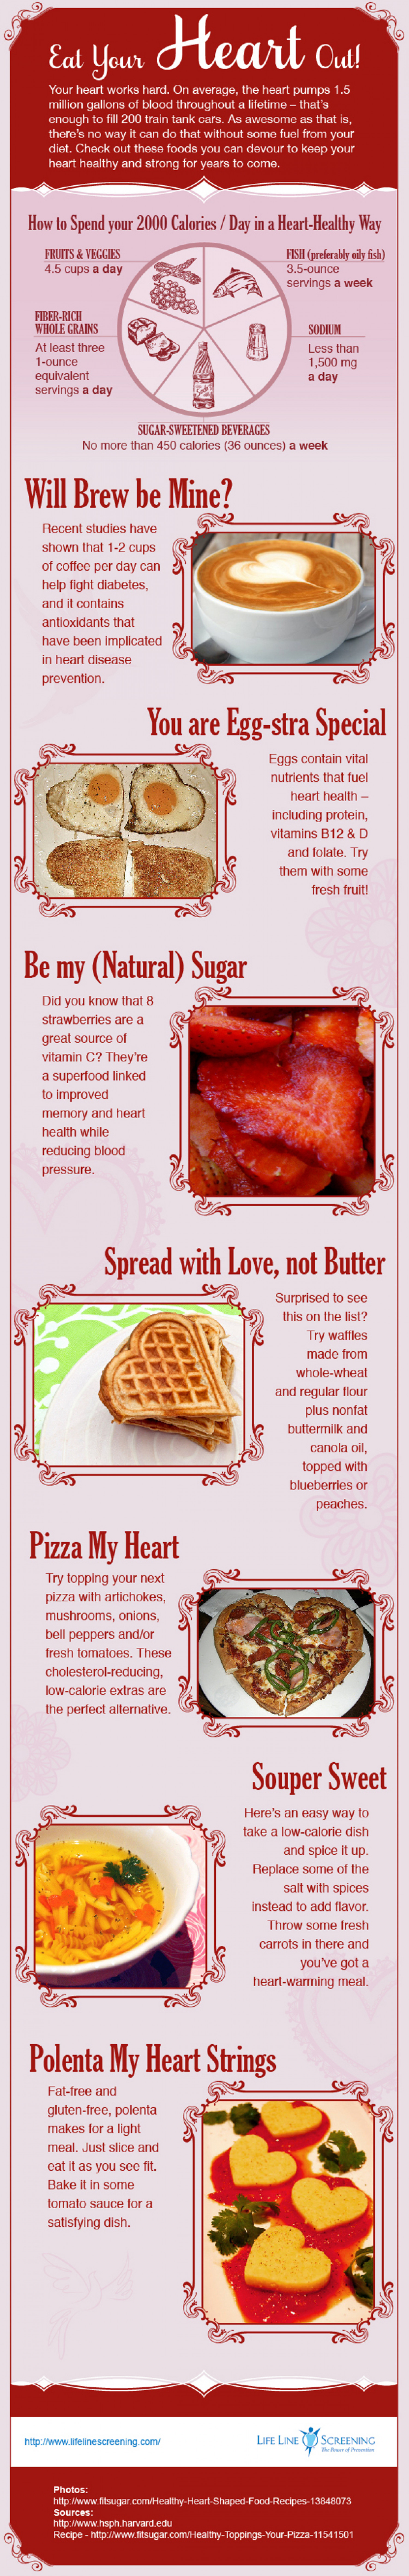 Eat your heart out heart healthy eating tips to help lower your eat your heart out heart healthy eating tips to help lower your risk for forumfinder Choice Image